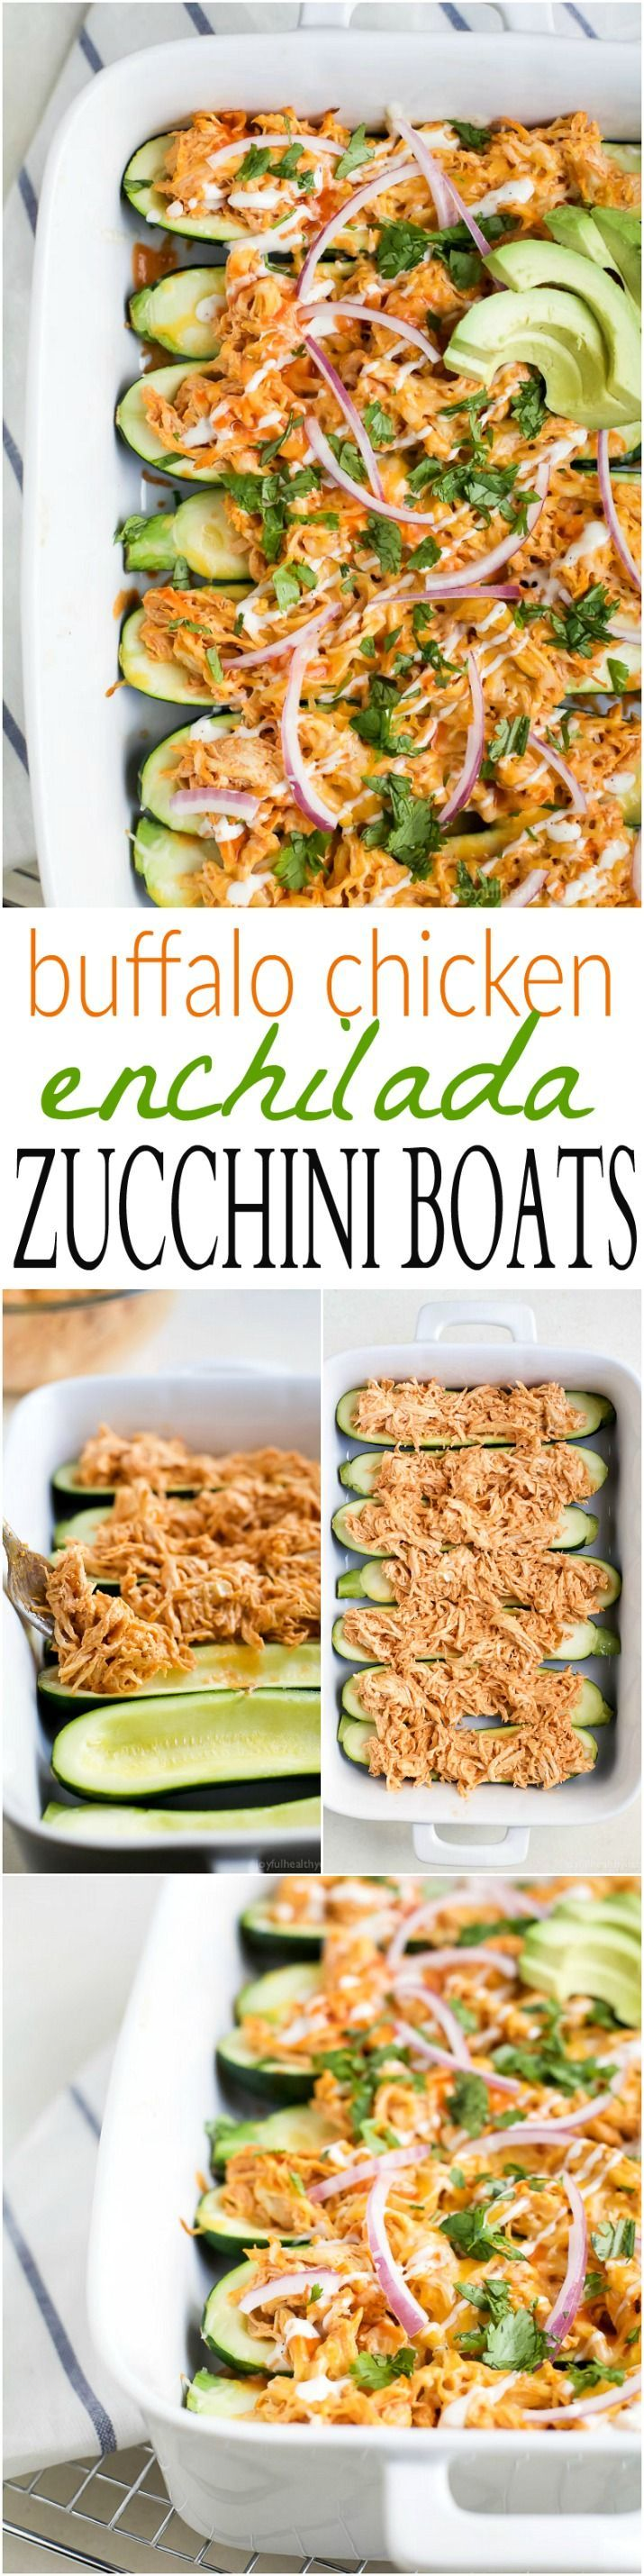 Buffalo Chicken Enchilada Zucchini Boats - tender zucchini stuffed with a creamy Buffalo Chicken mixture then drizzled with ranch. The perfect healthy way to eat Buffalo Chicken Dip without all the carbs!   joyfulhealthyeats.com   gluten free recipes